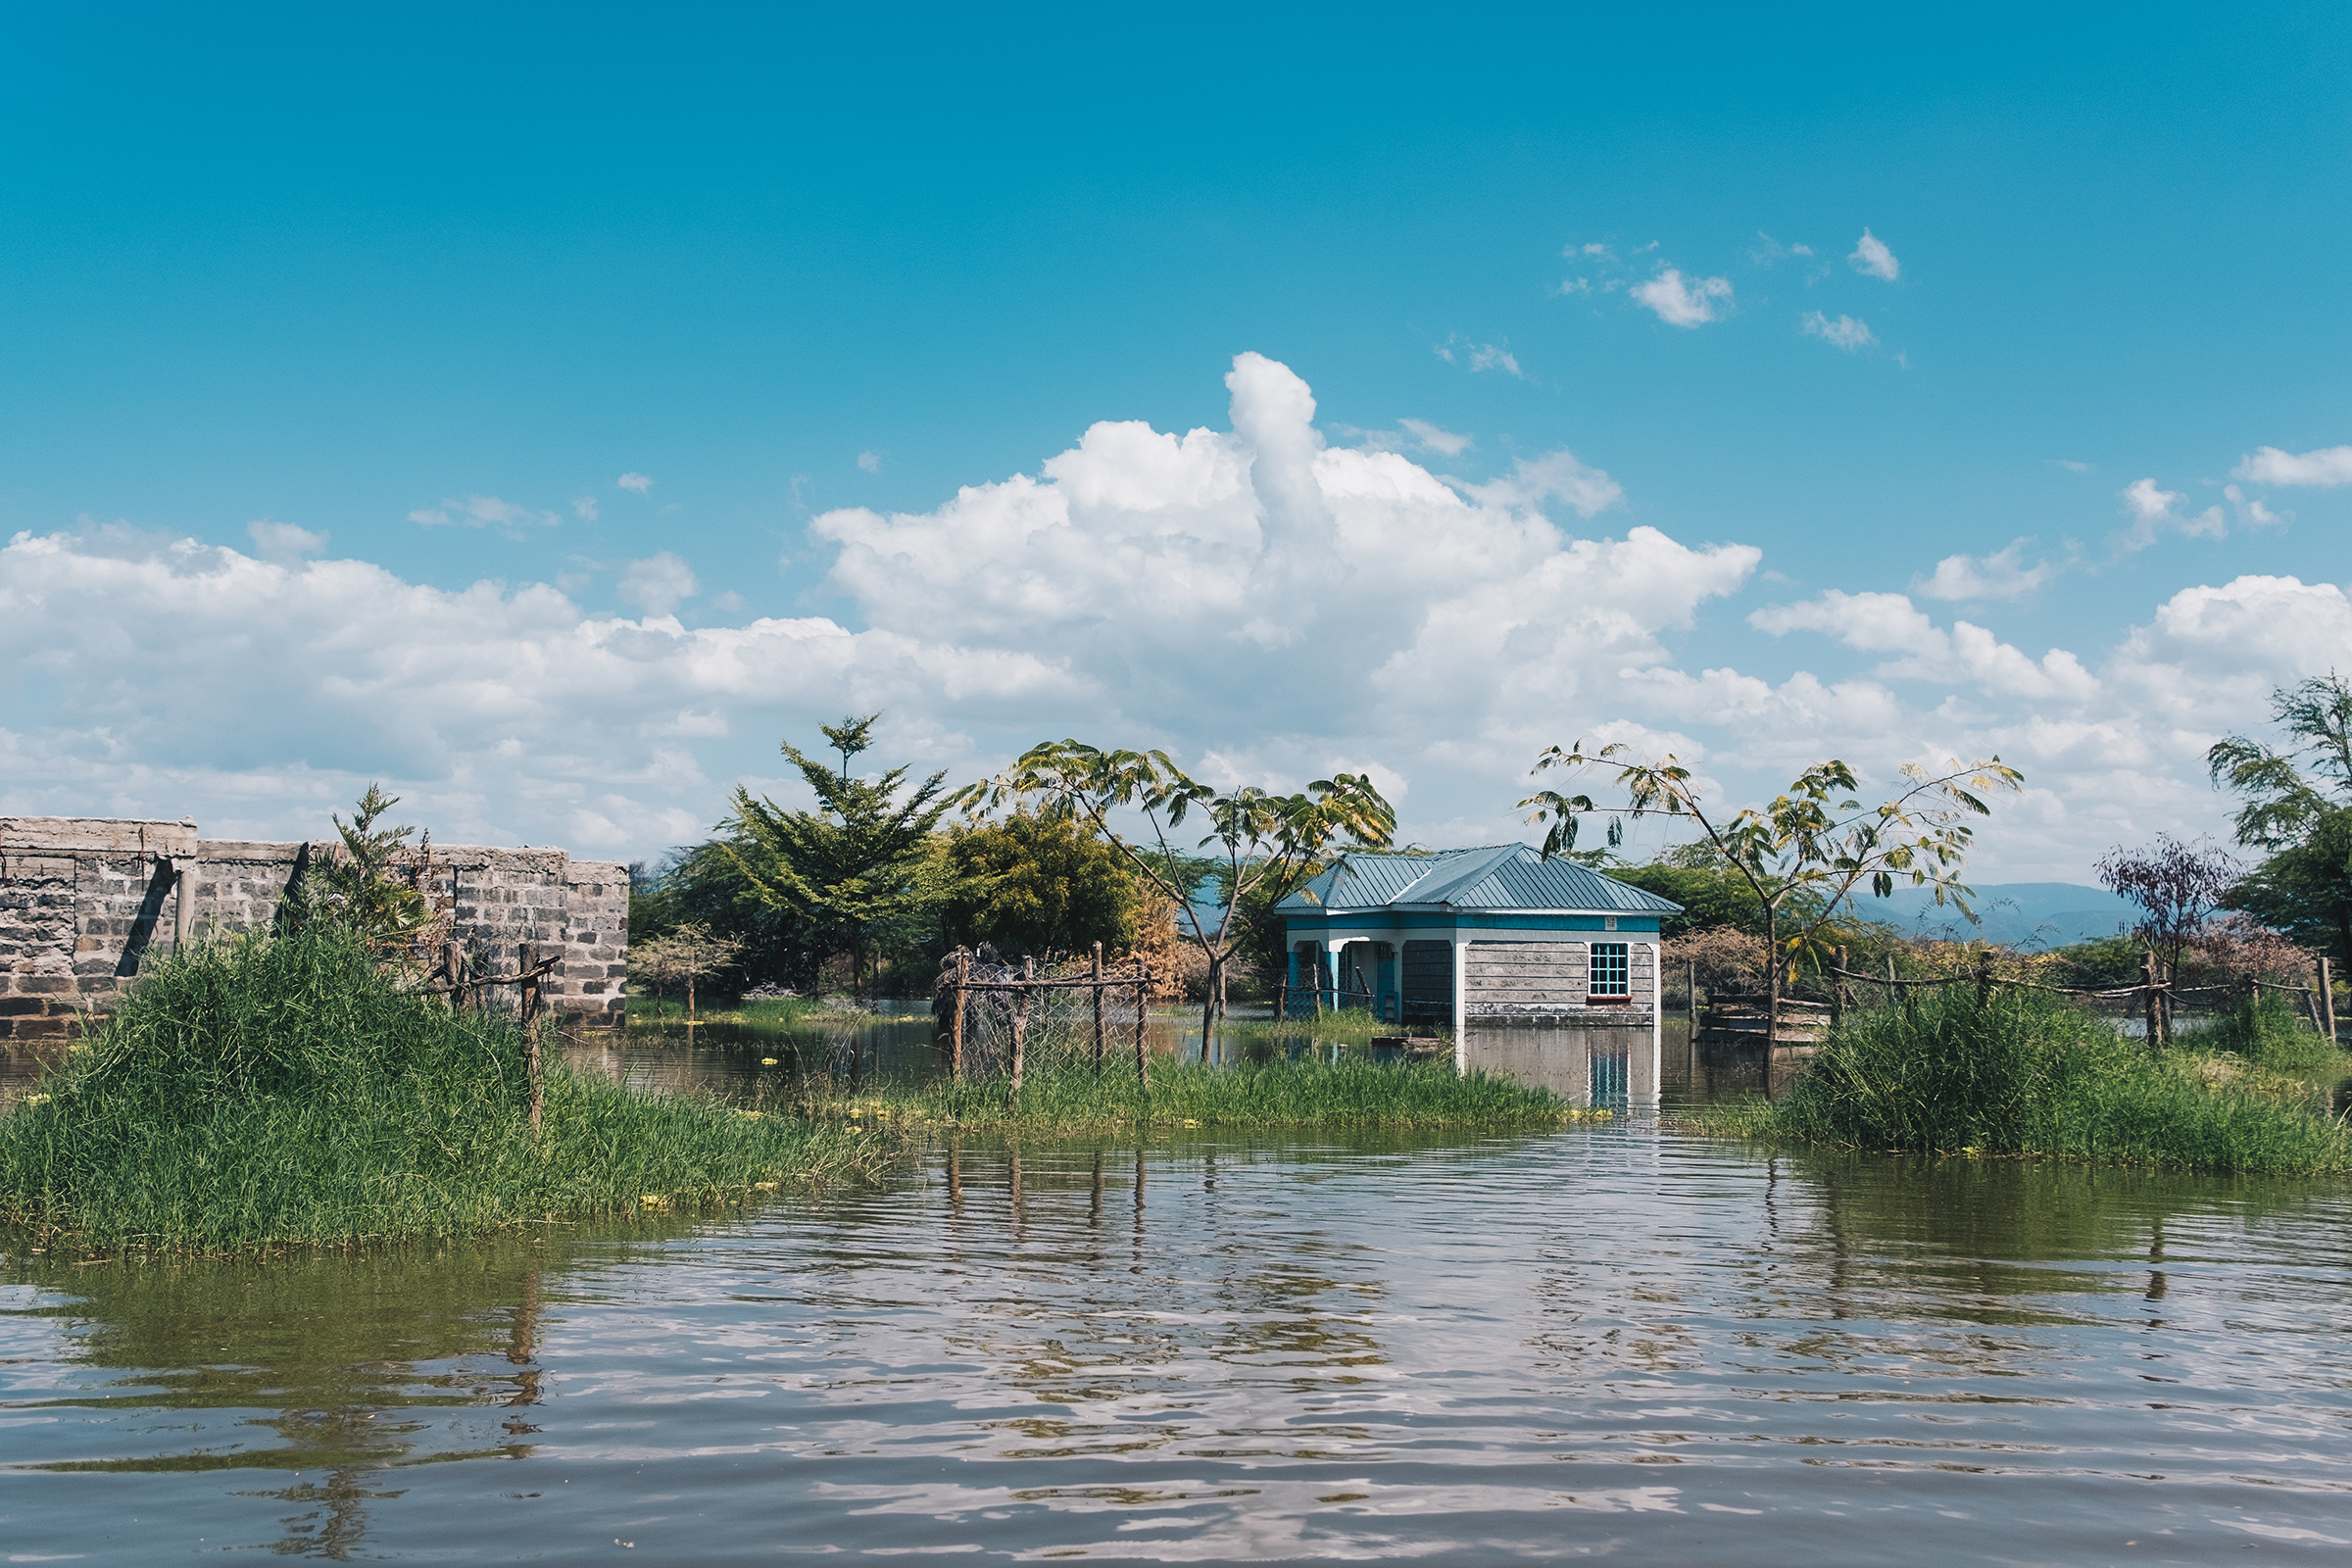 When Lake Baringo rose, families in the area lost their homes and grazing fields.